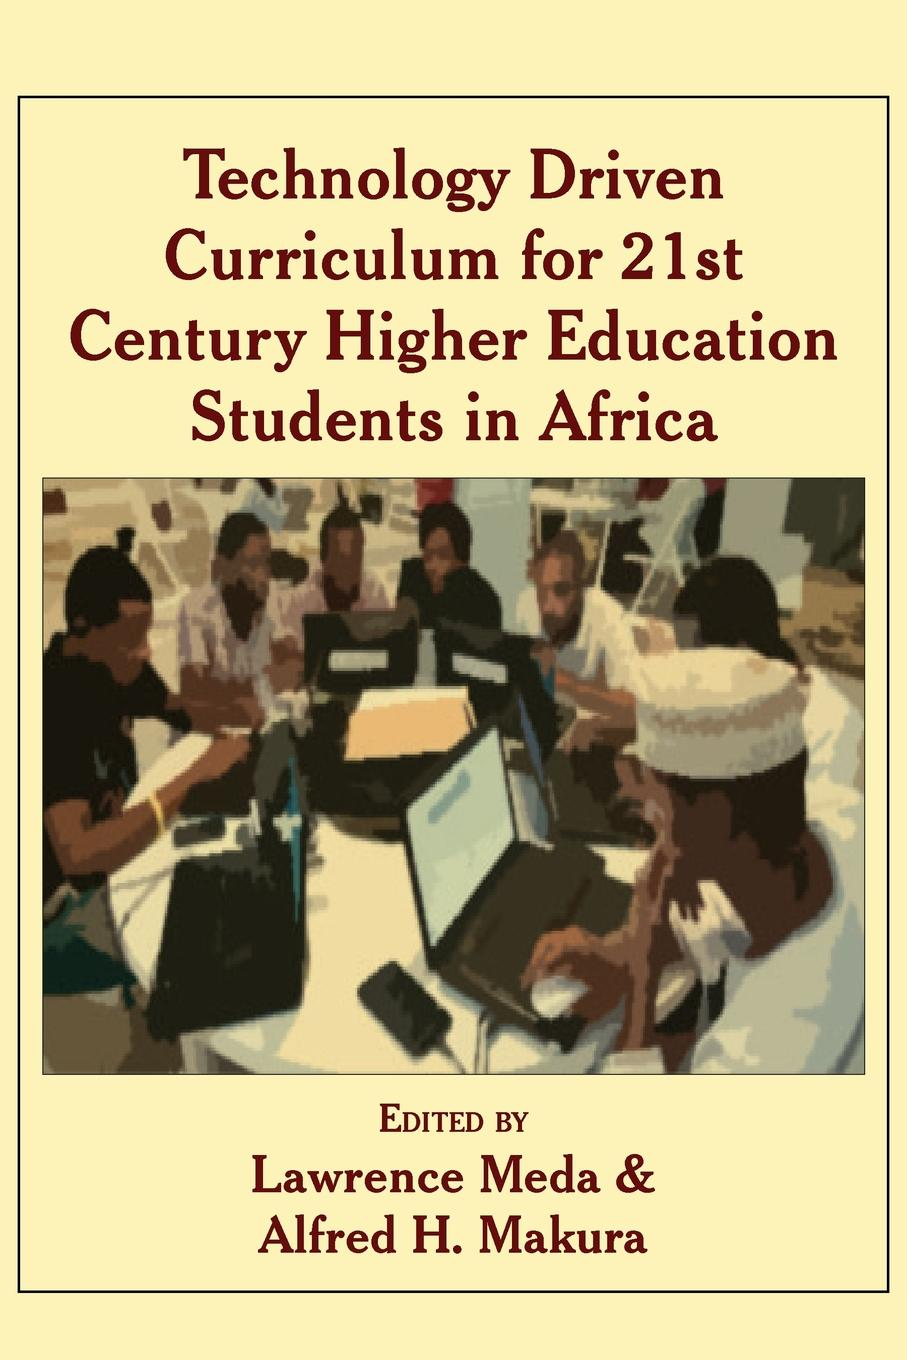 Technology Driven Curriculum for 21st Century Higher Education Students in Africa musa argungu muhammad pastoralists girls education in africa a study of emusoi center in northern tanzania